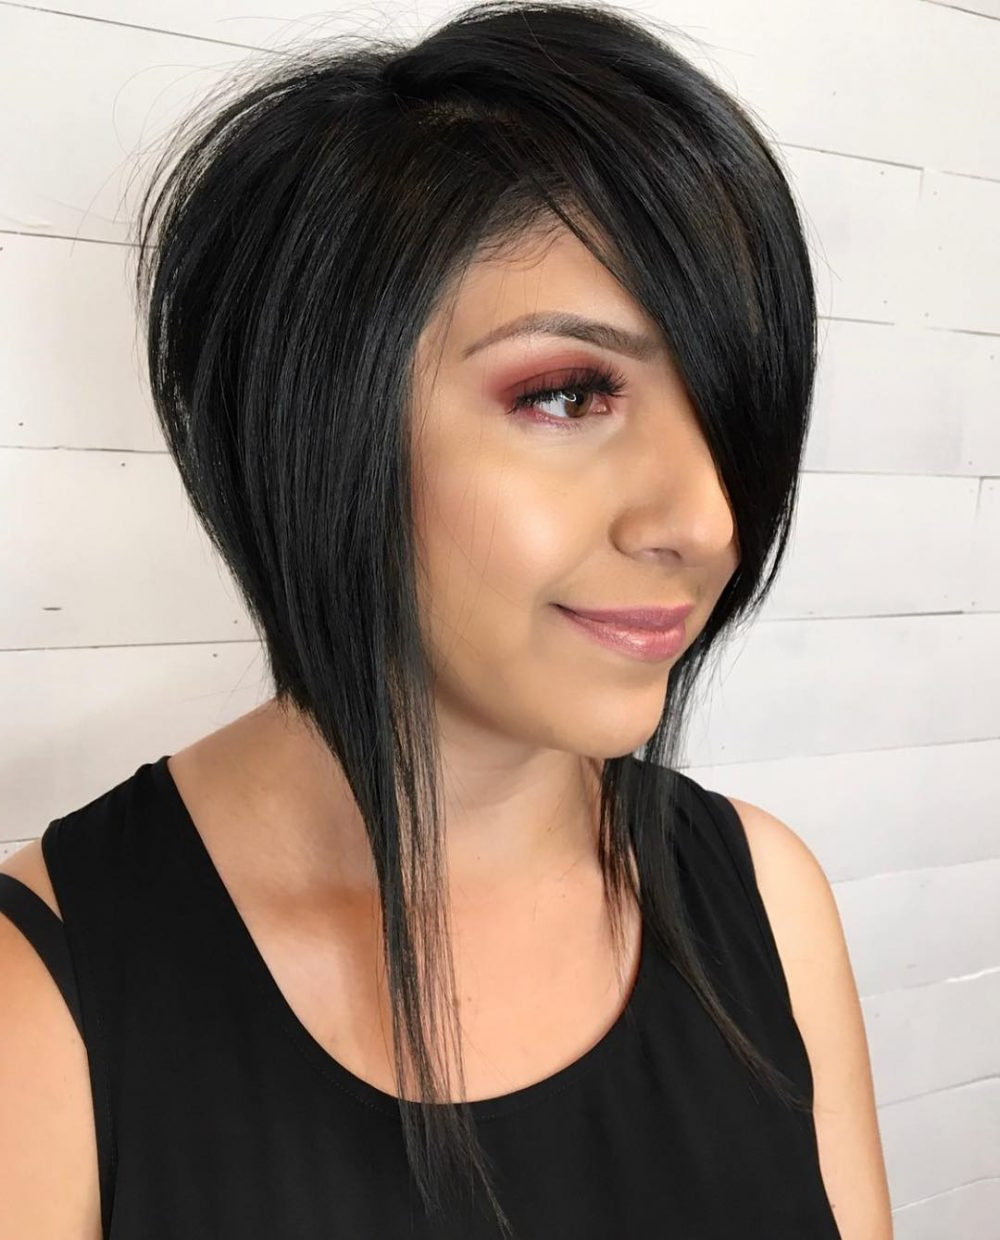 43 Perfect Short Hairstyles For Fine Hair In 2018 Within Short Haircuts With One Side Shaved (View 3 of 25)